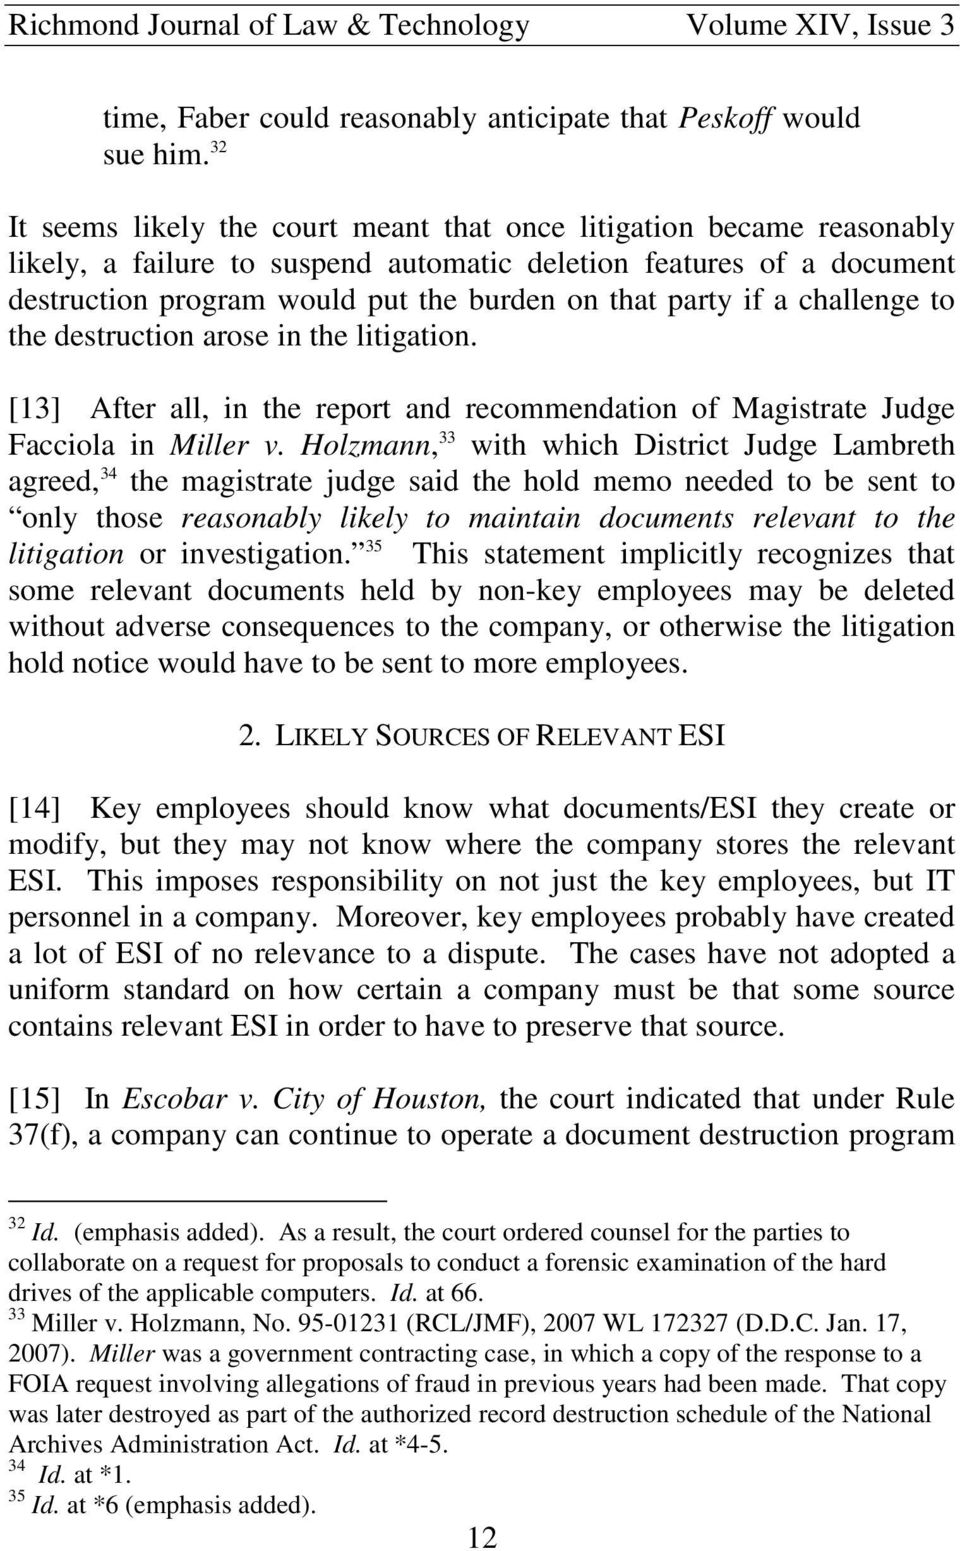 if a challenge to the destruction arose in the litigation. [13] After all, in the report and recommendation of Magistrate Judge Facciola in Miller v.